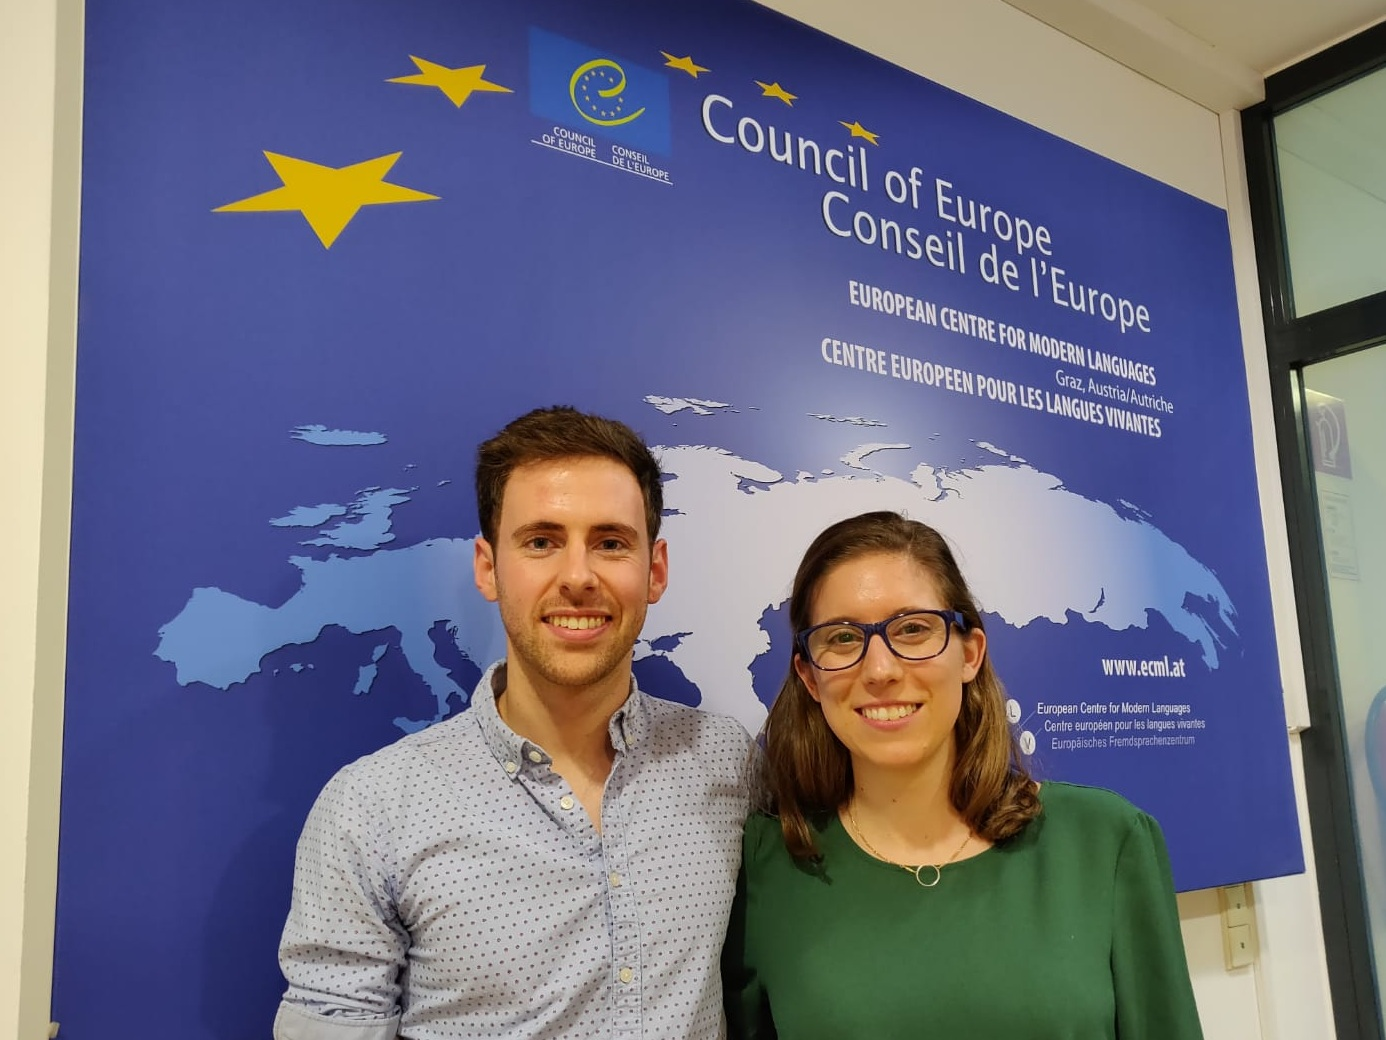 Co-founders Taylor and Ander at the Centre for Modern Languages in Graz, Austria